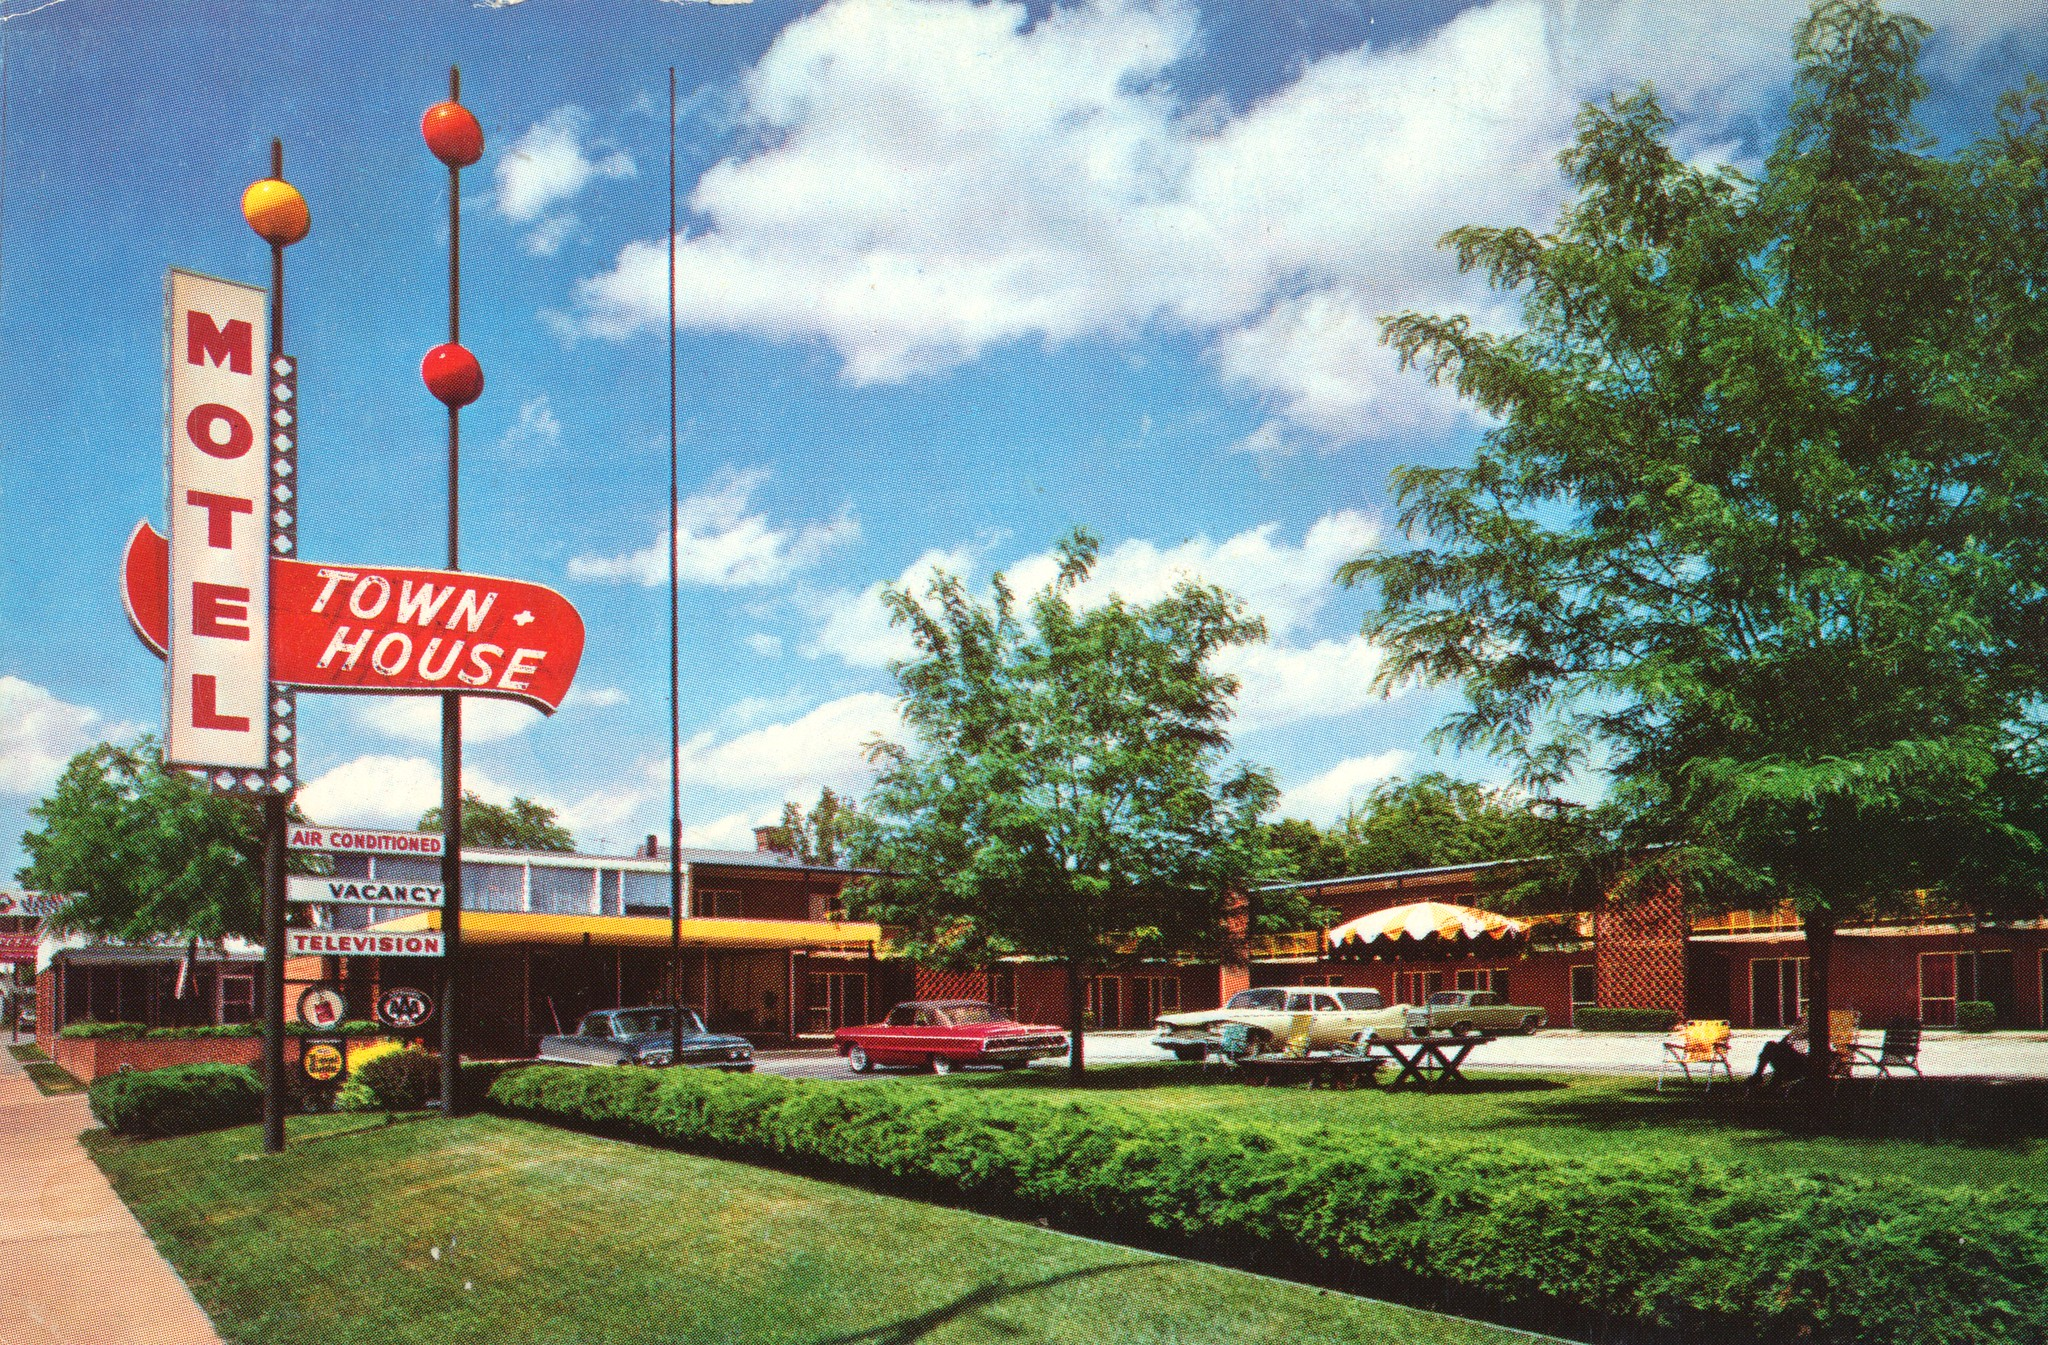 Town House Motel - 400 South Illinois Street, Belleville, Illinois U.S.A. - 1960's